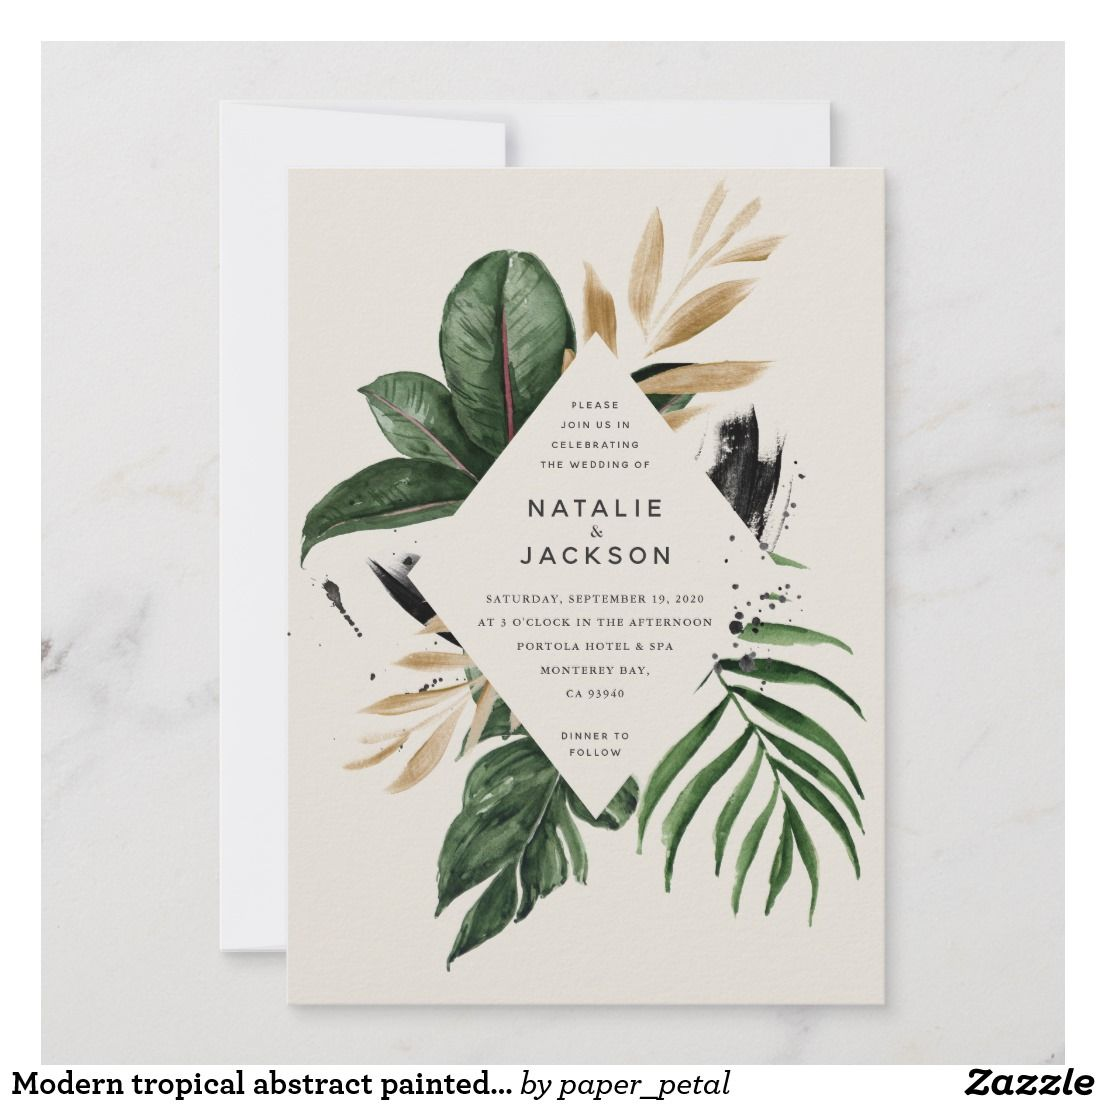 Modern Wedding Ceremony Songs: Modern Tropical Abstract Painted Wedding